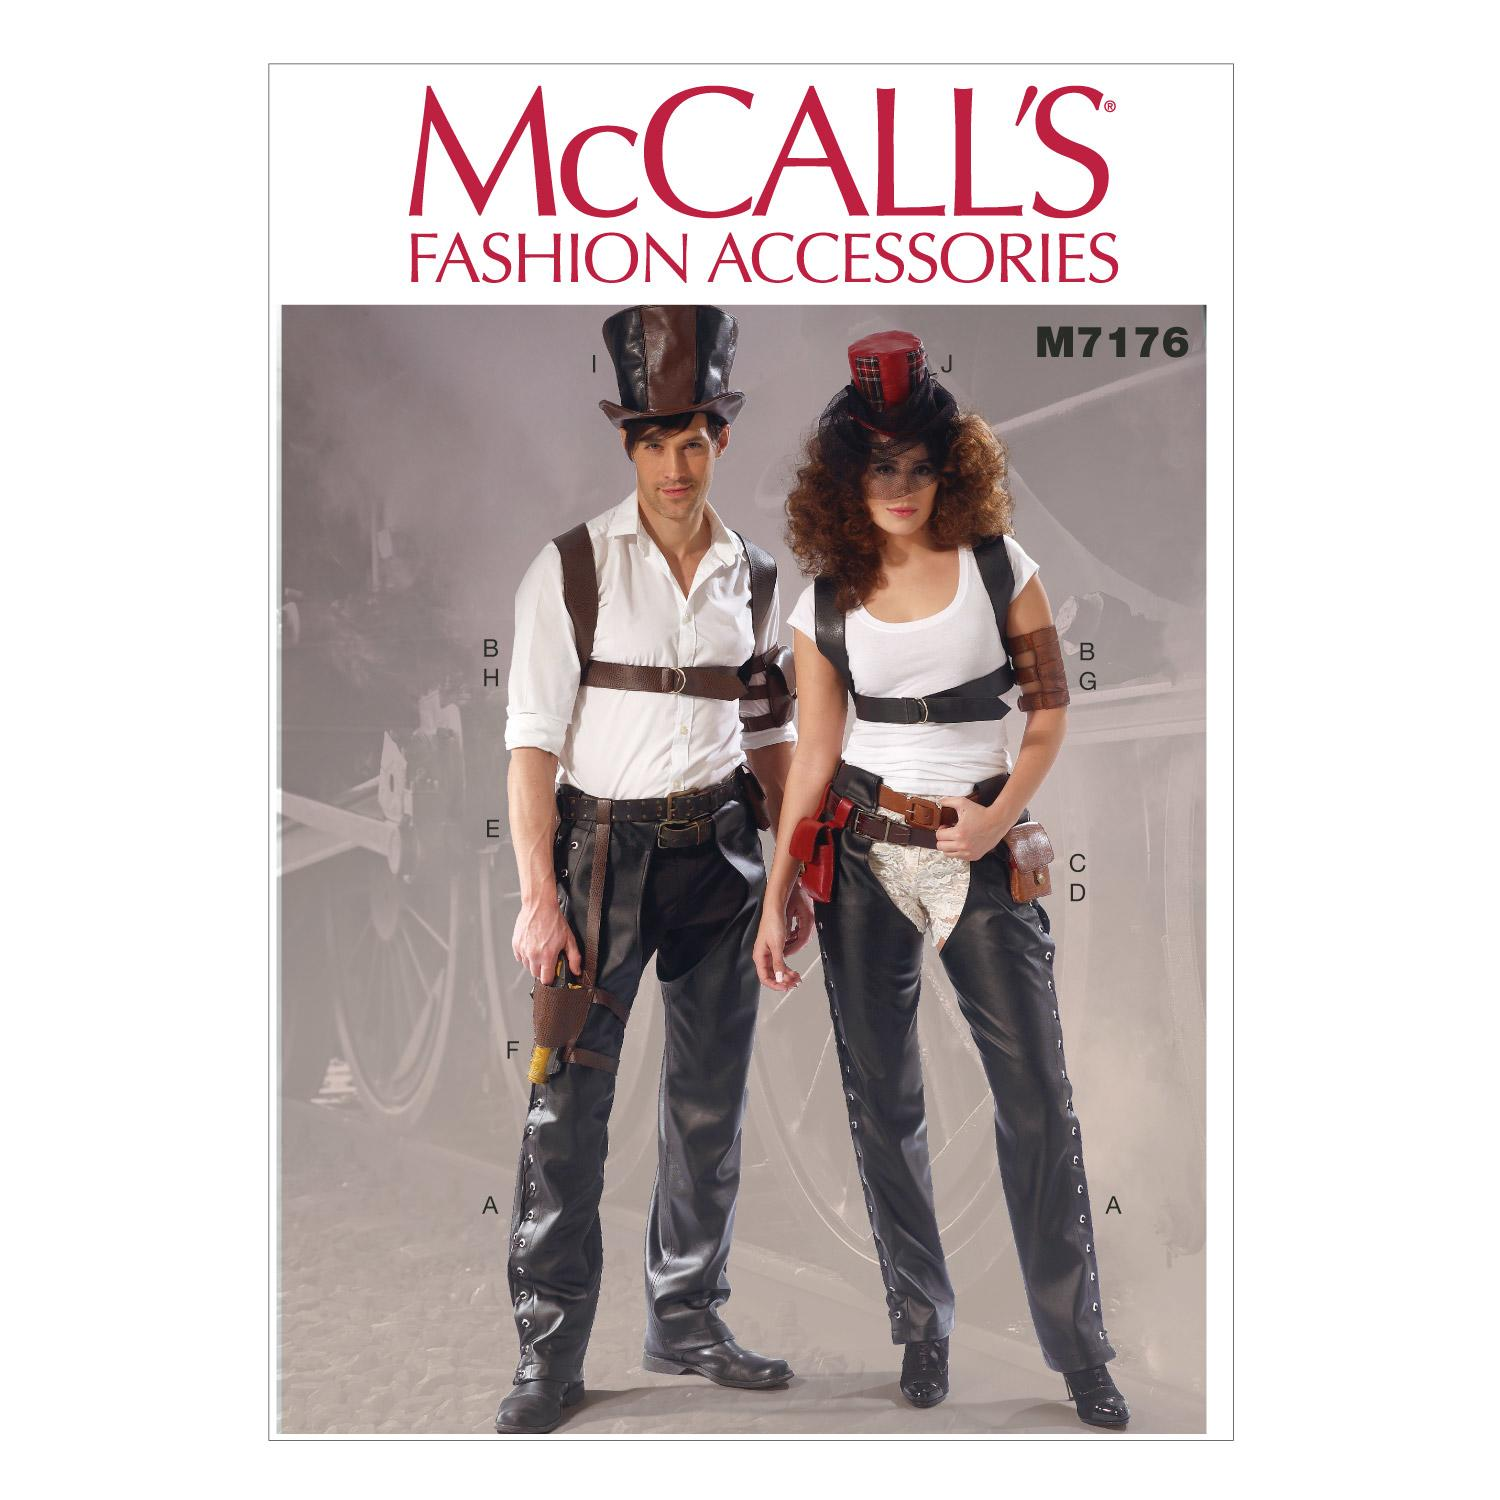 McCalls M7176 Accessories, Costumes